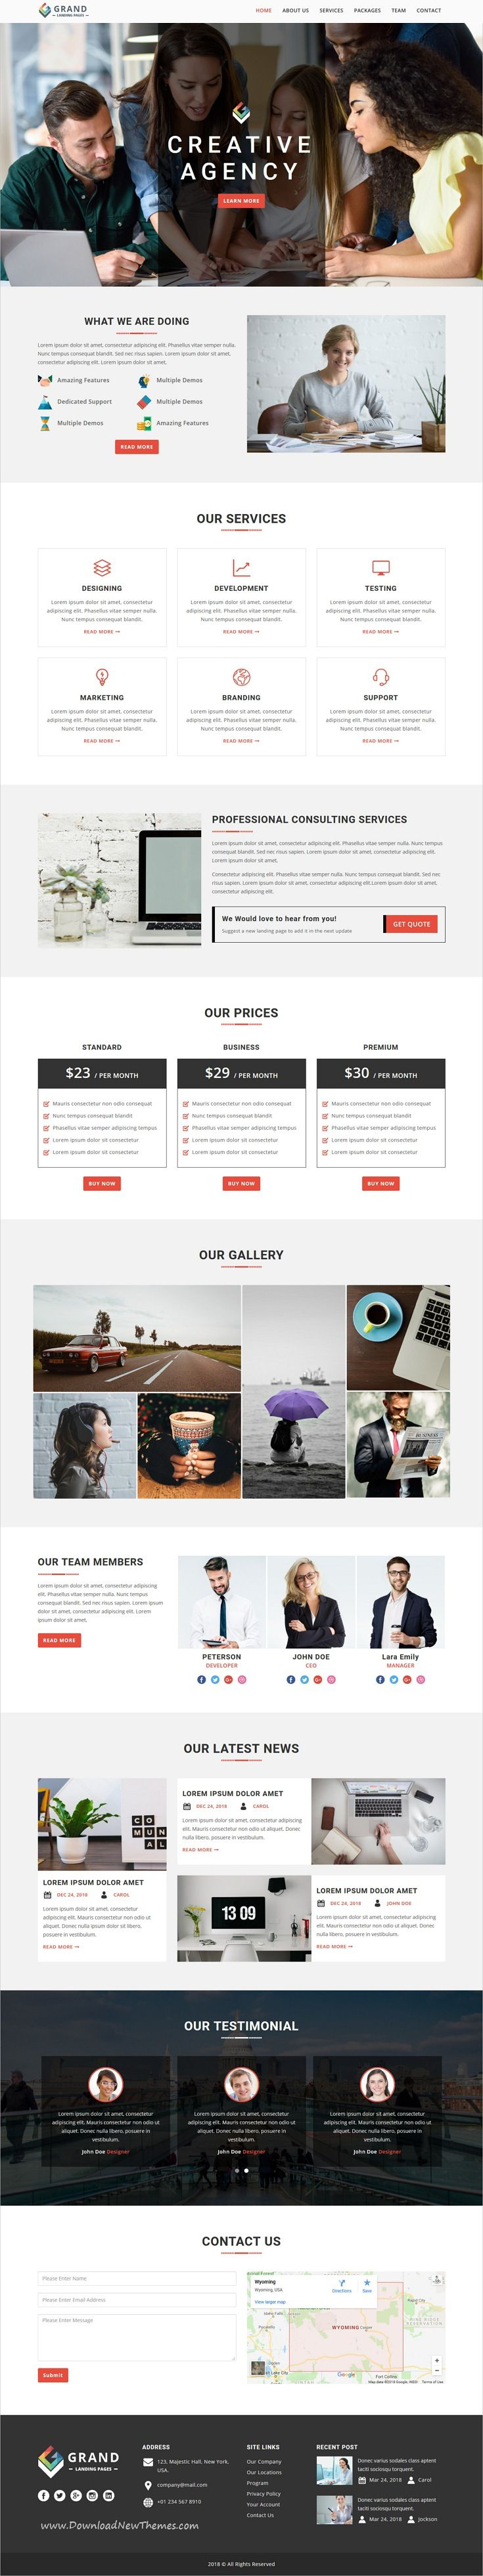 Grand Lead Generating HTML Landing Pages